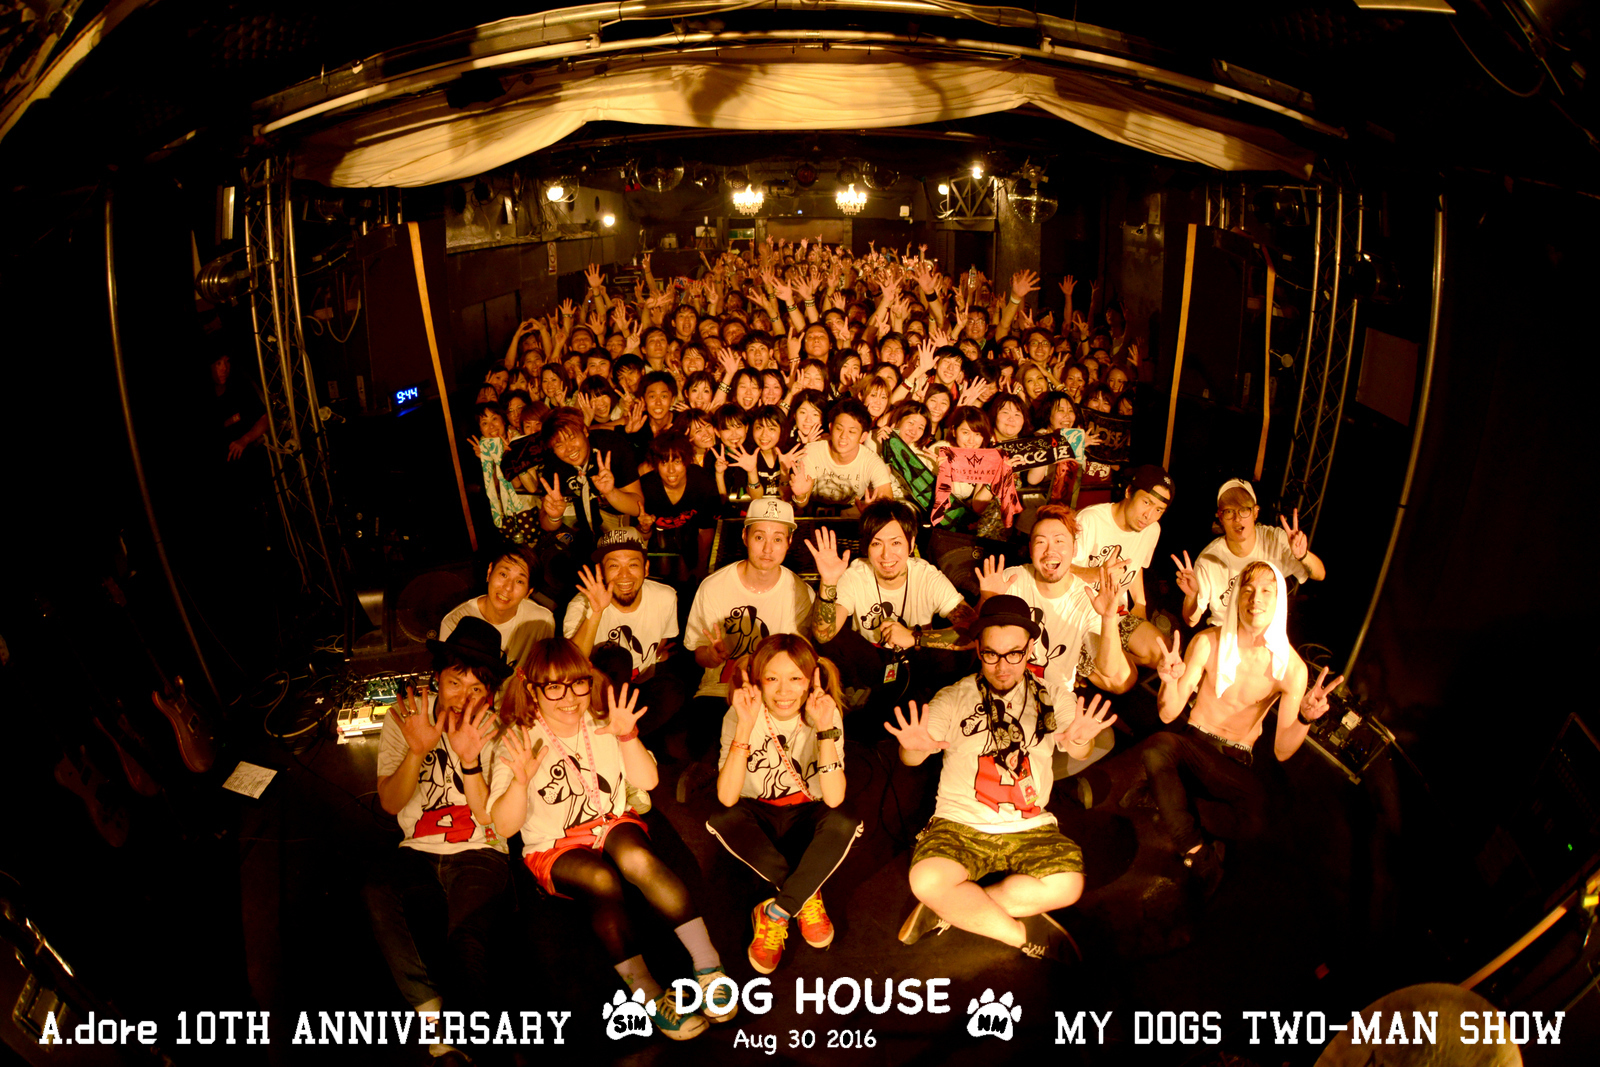 【A DOG HOUSE】NOSEMAKER x SiM